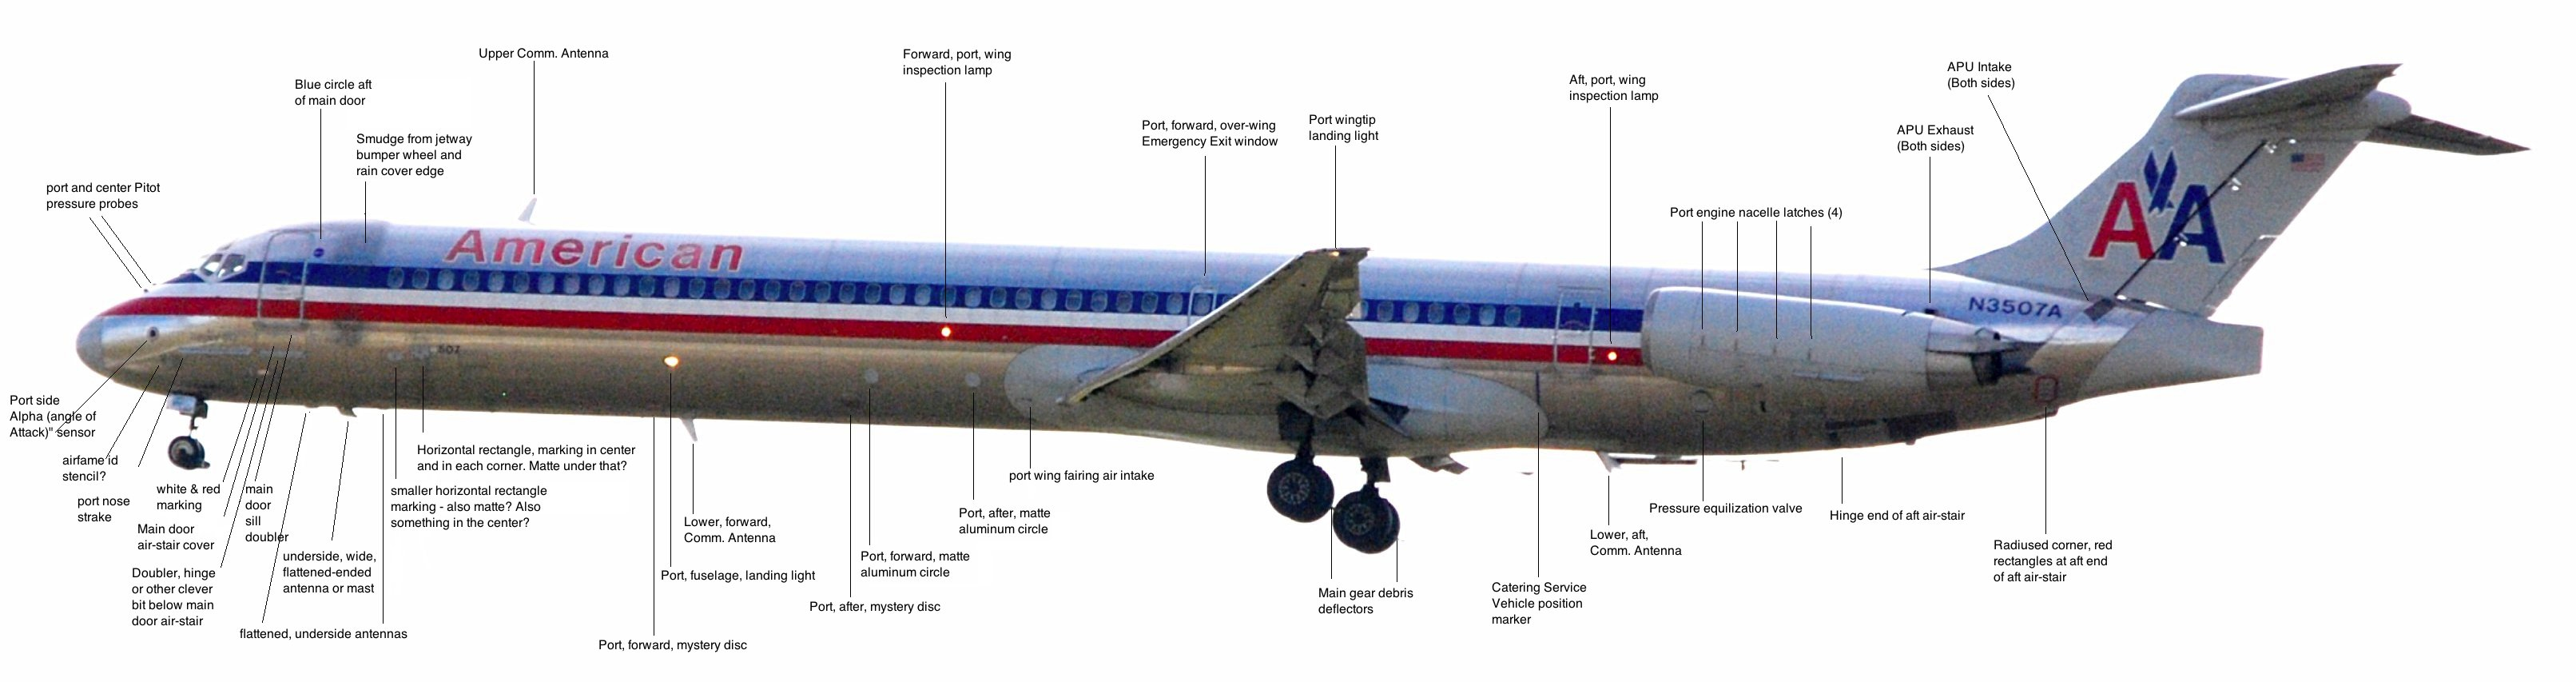 File:Annotated AA MD-80, features & parts labeled (5876474684) (2 ...